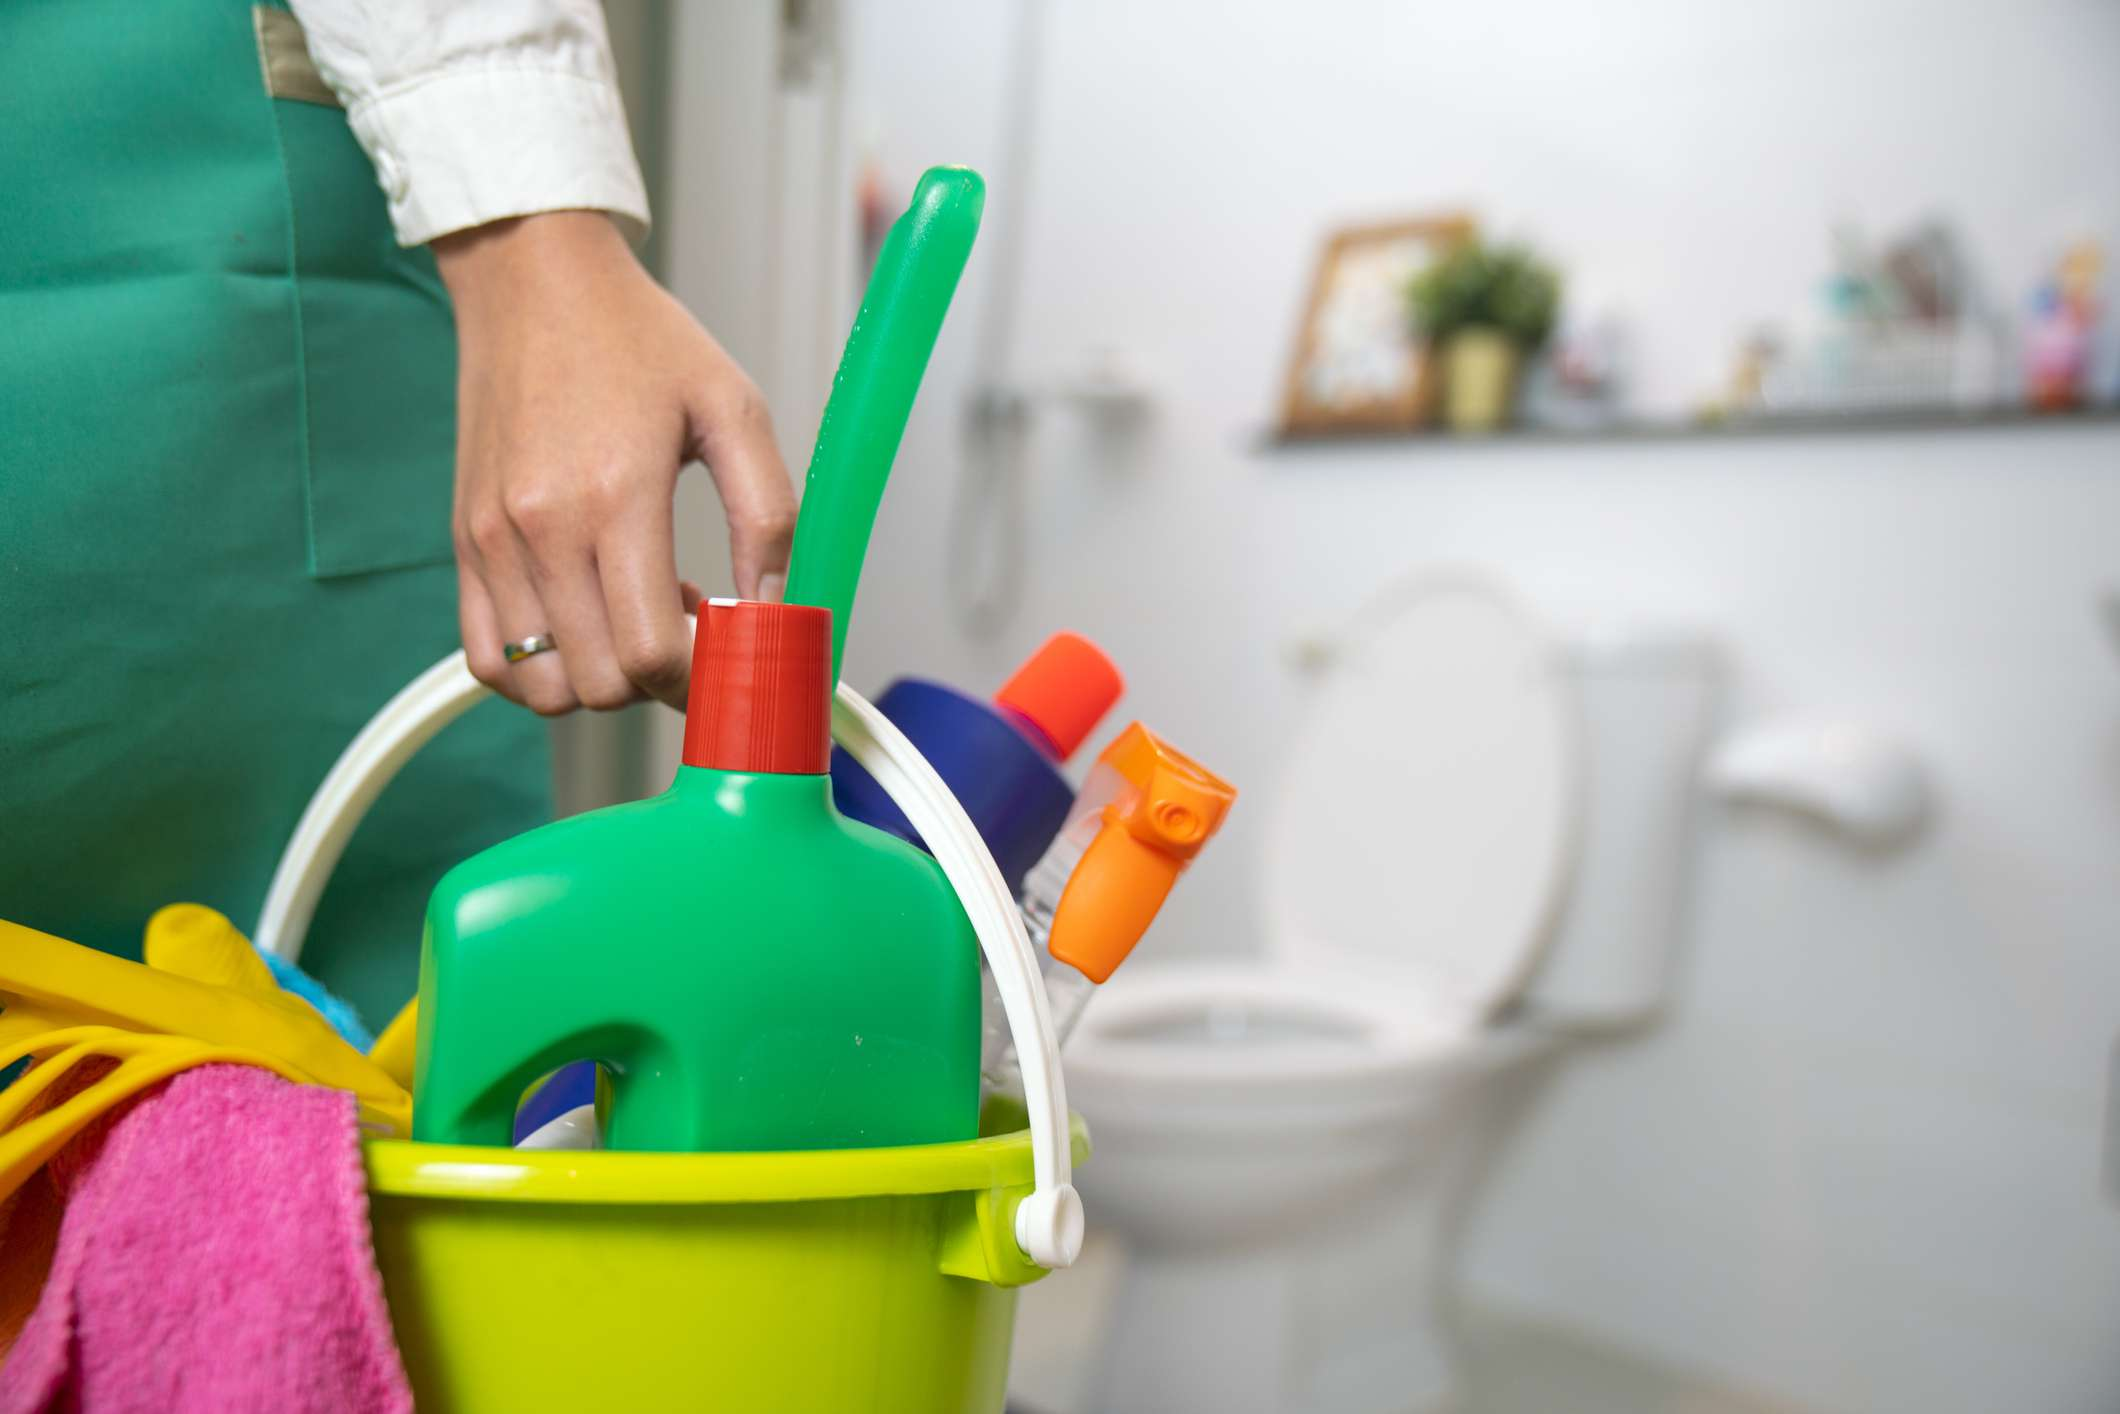 The cleaning woman is standing in the bathroom holding a blue bucket full of chemicals and facilities for storing her hands.